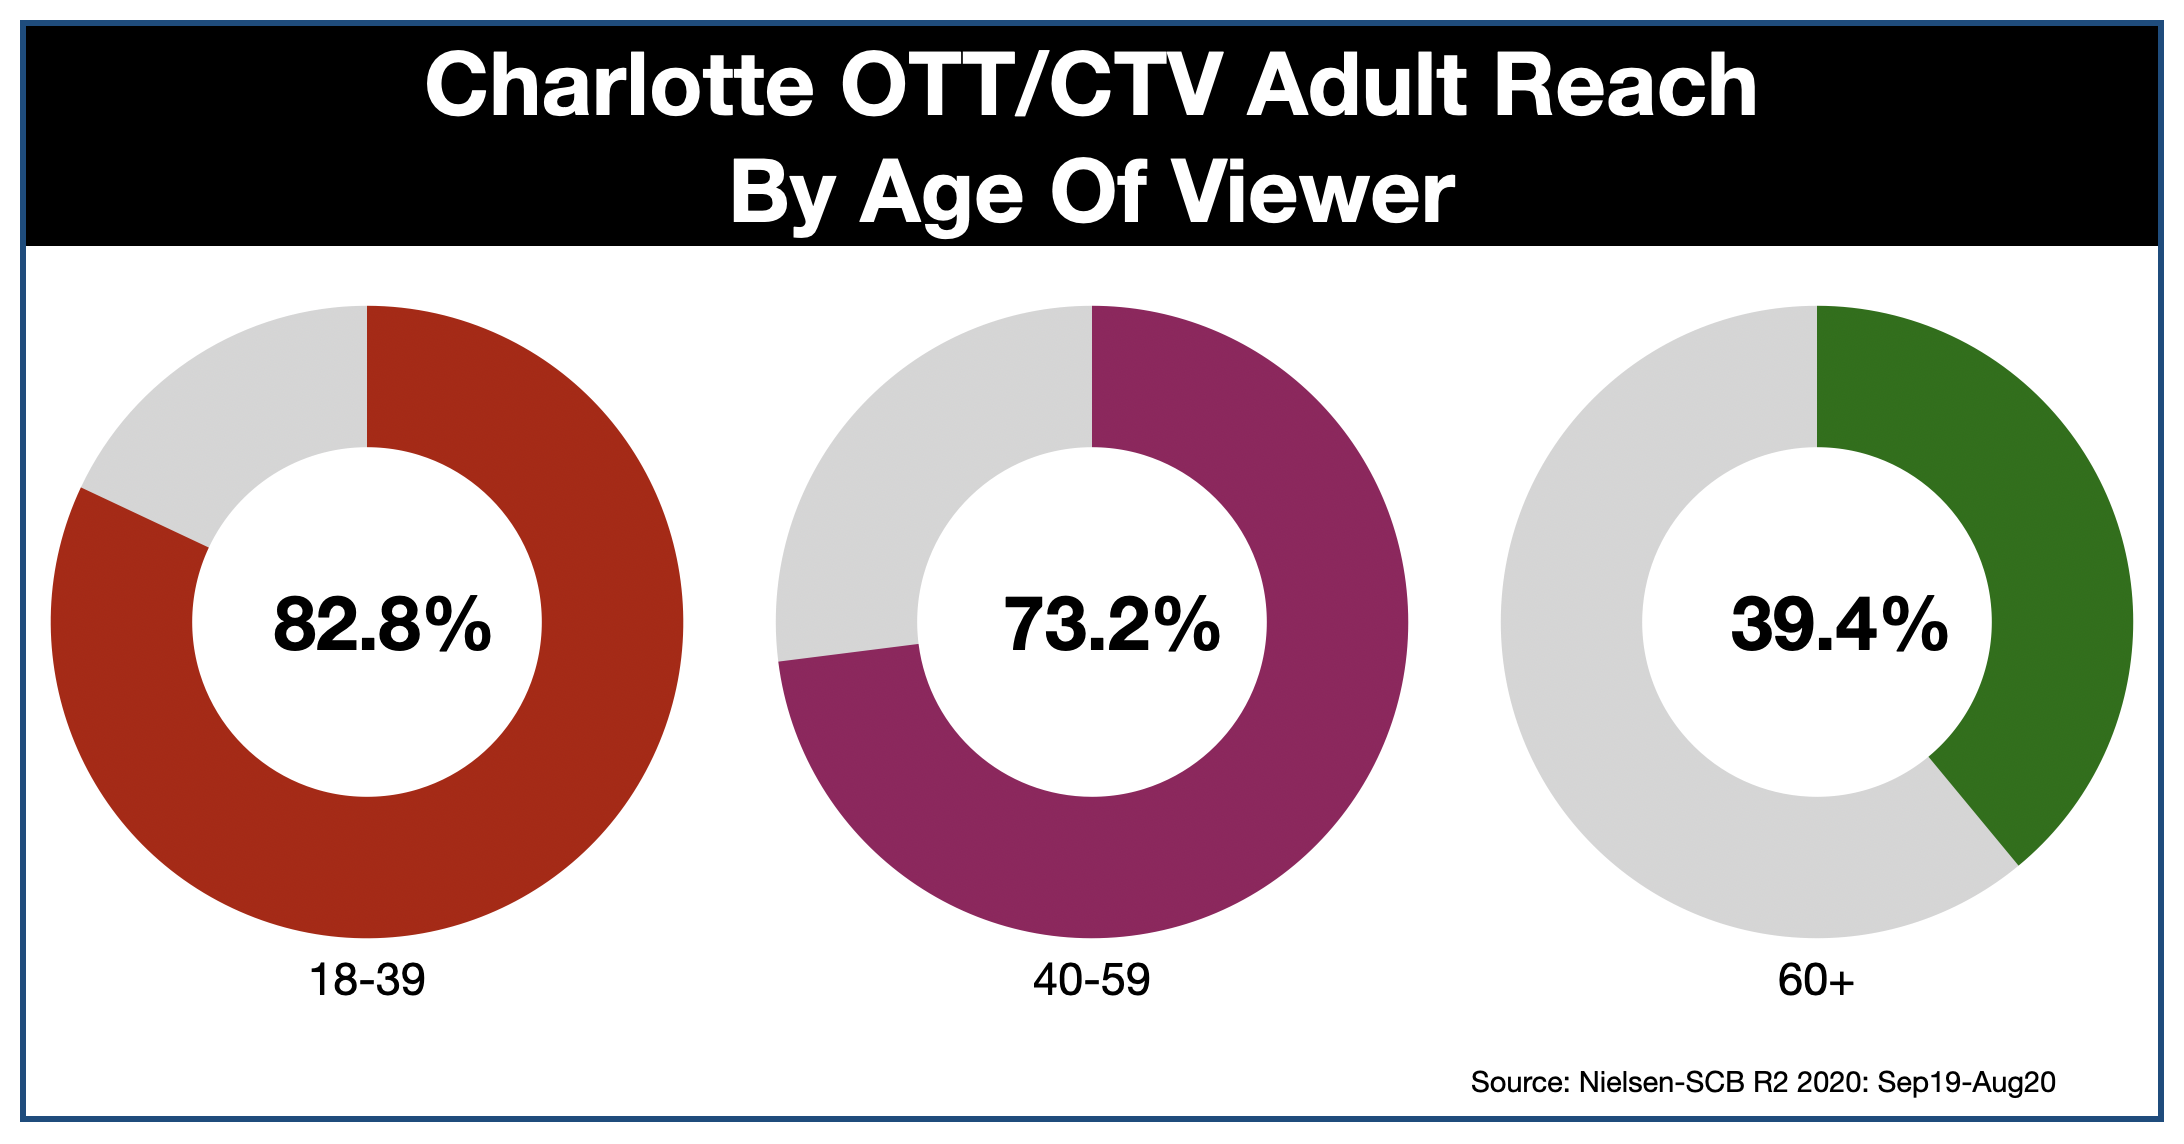 OTT & CTV advertising in Charlotte Age